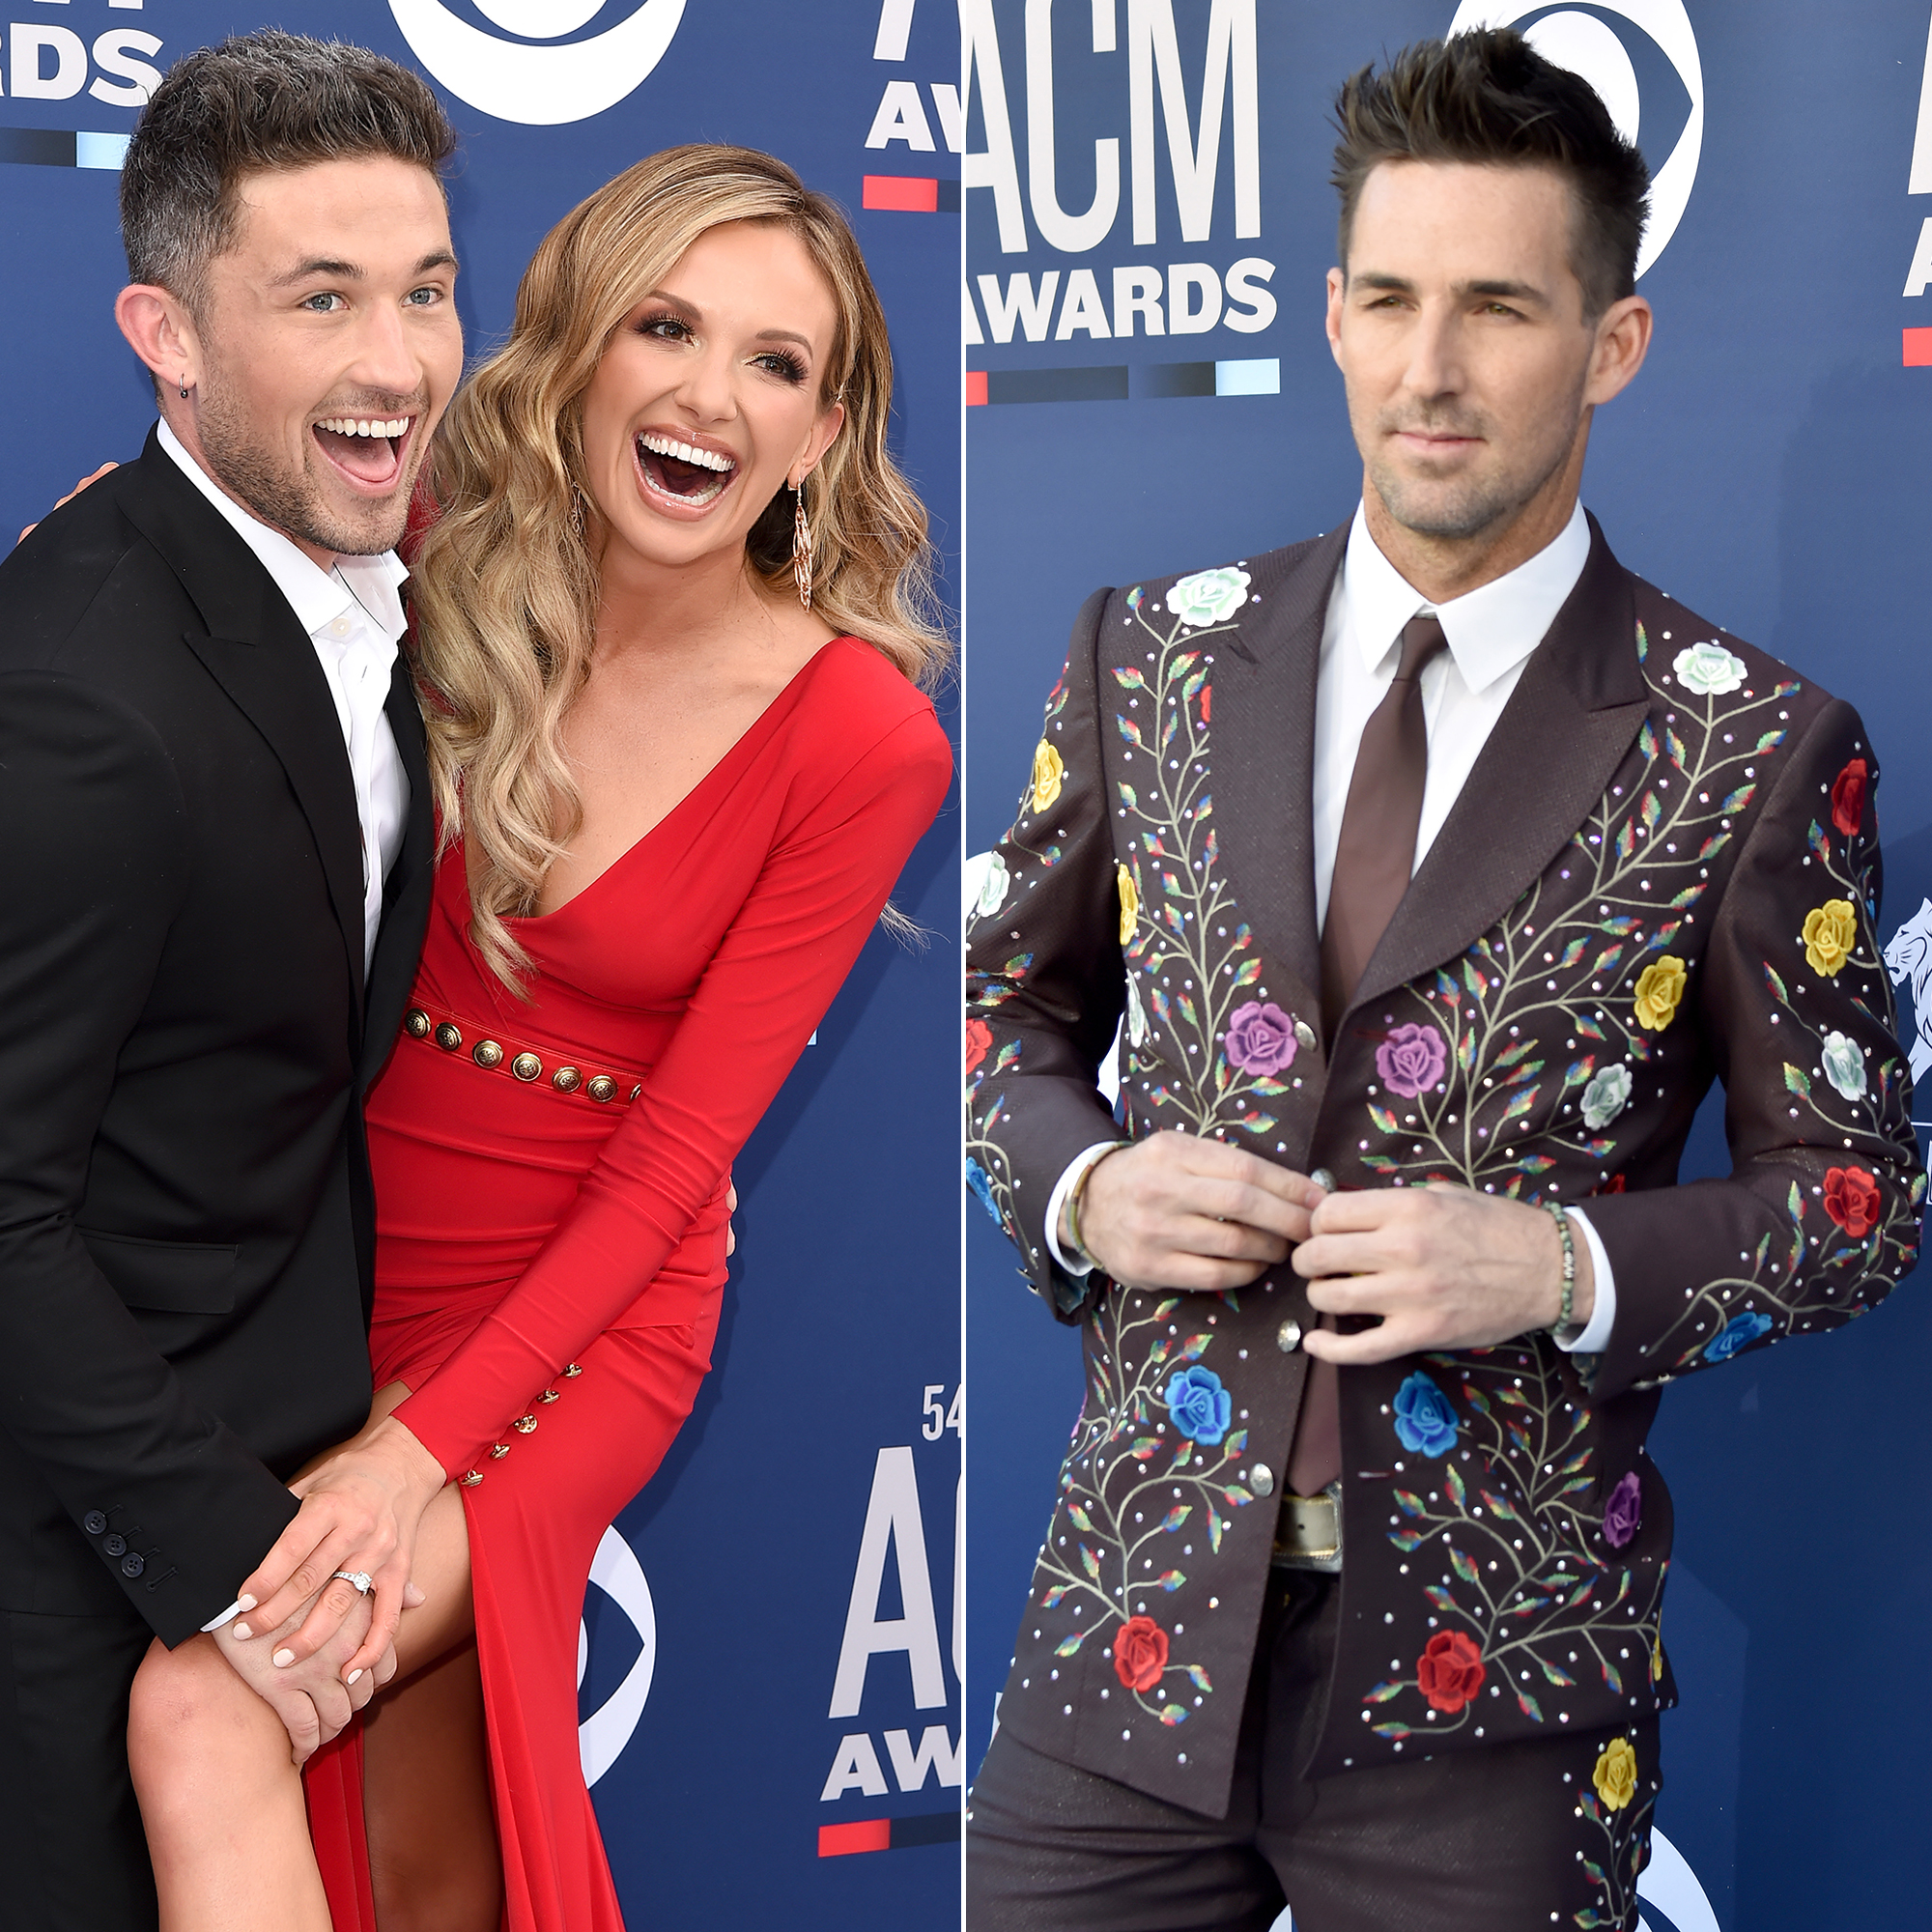 Carly Pearce Says Jake Owen to Sing First Dance at Her Wedding - Michael Ray, Carly Pearce and Jake Owen.